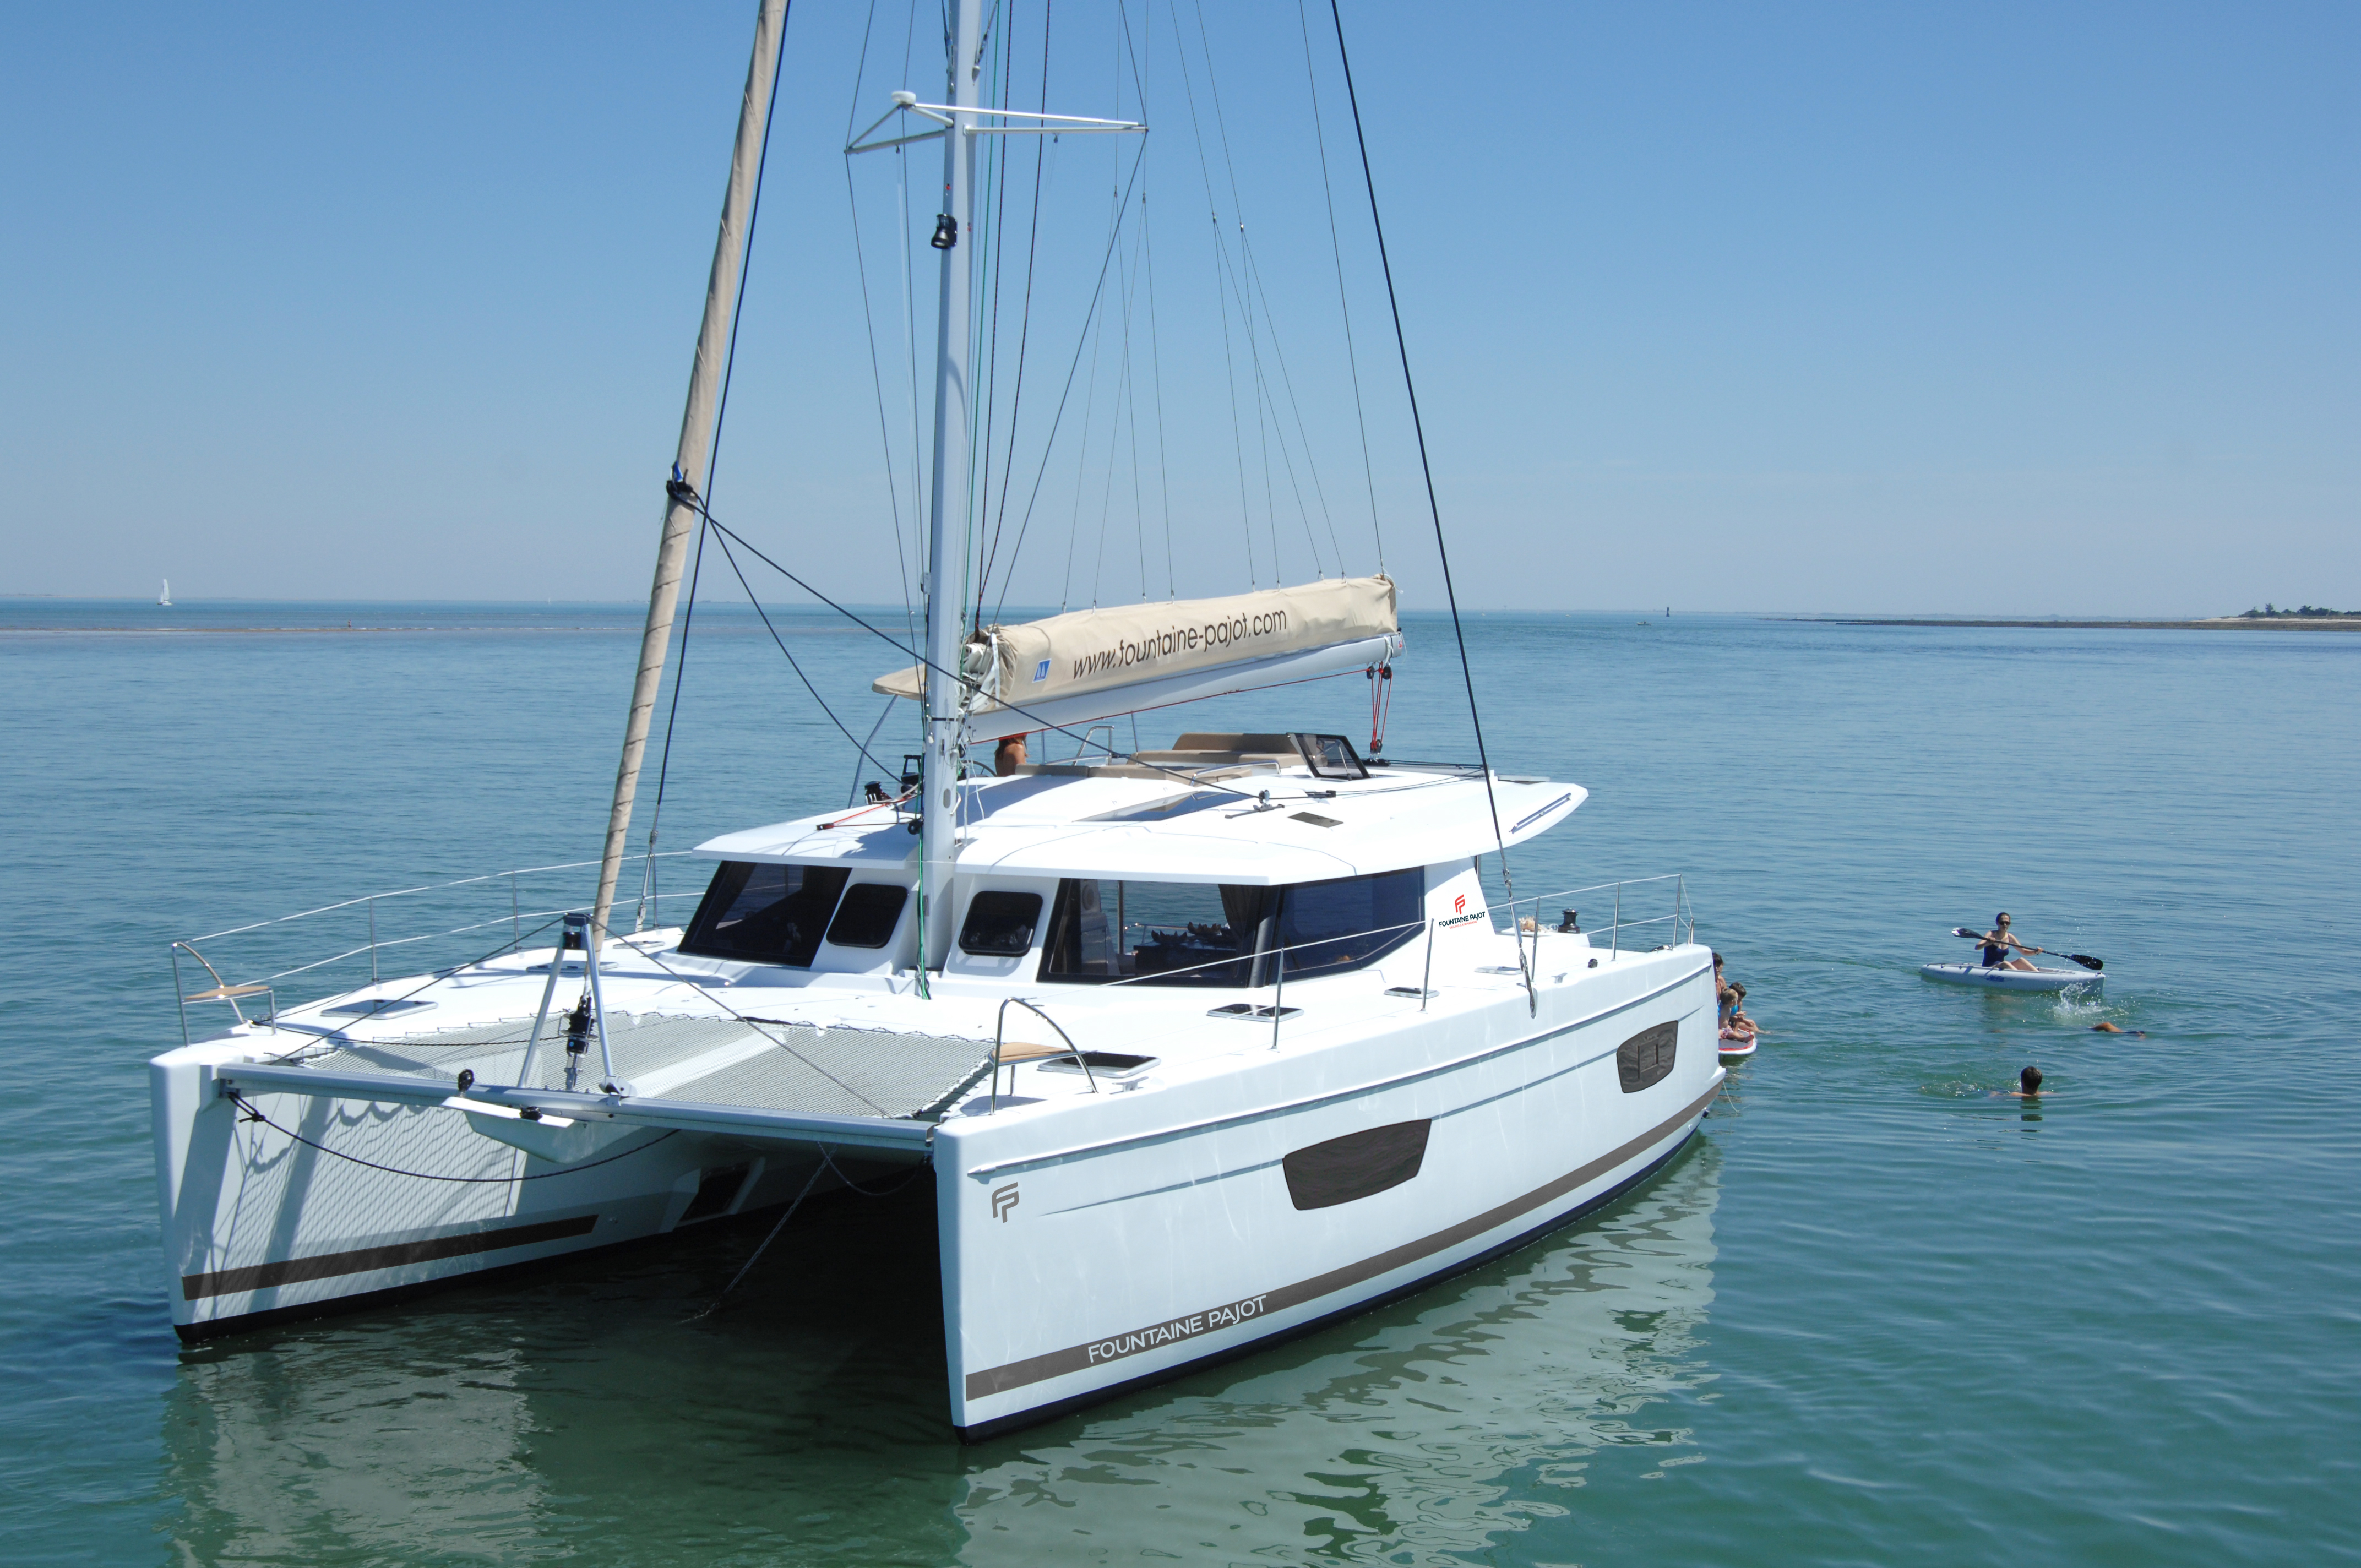 Helia 44 naming competition - Cumberland Charter Yachts